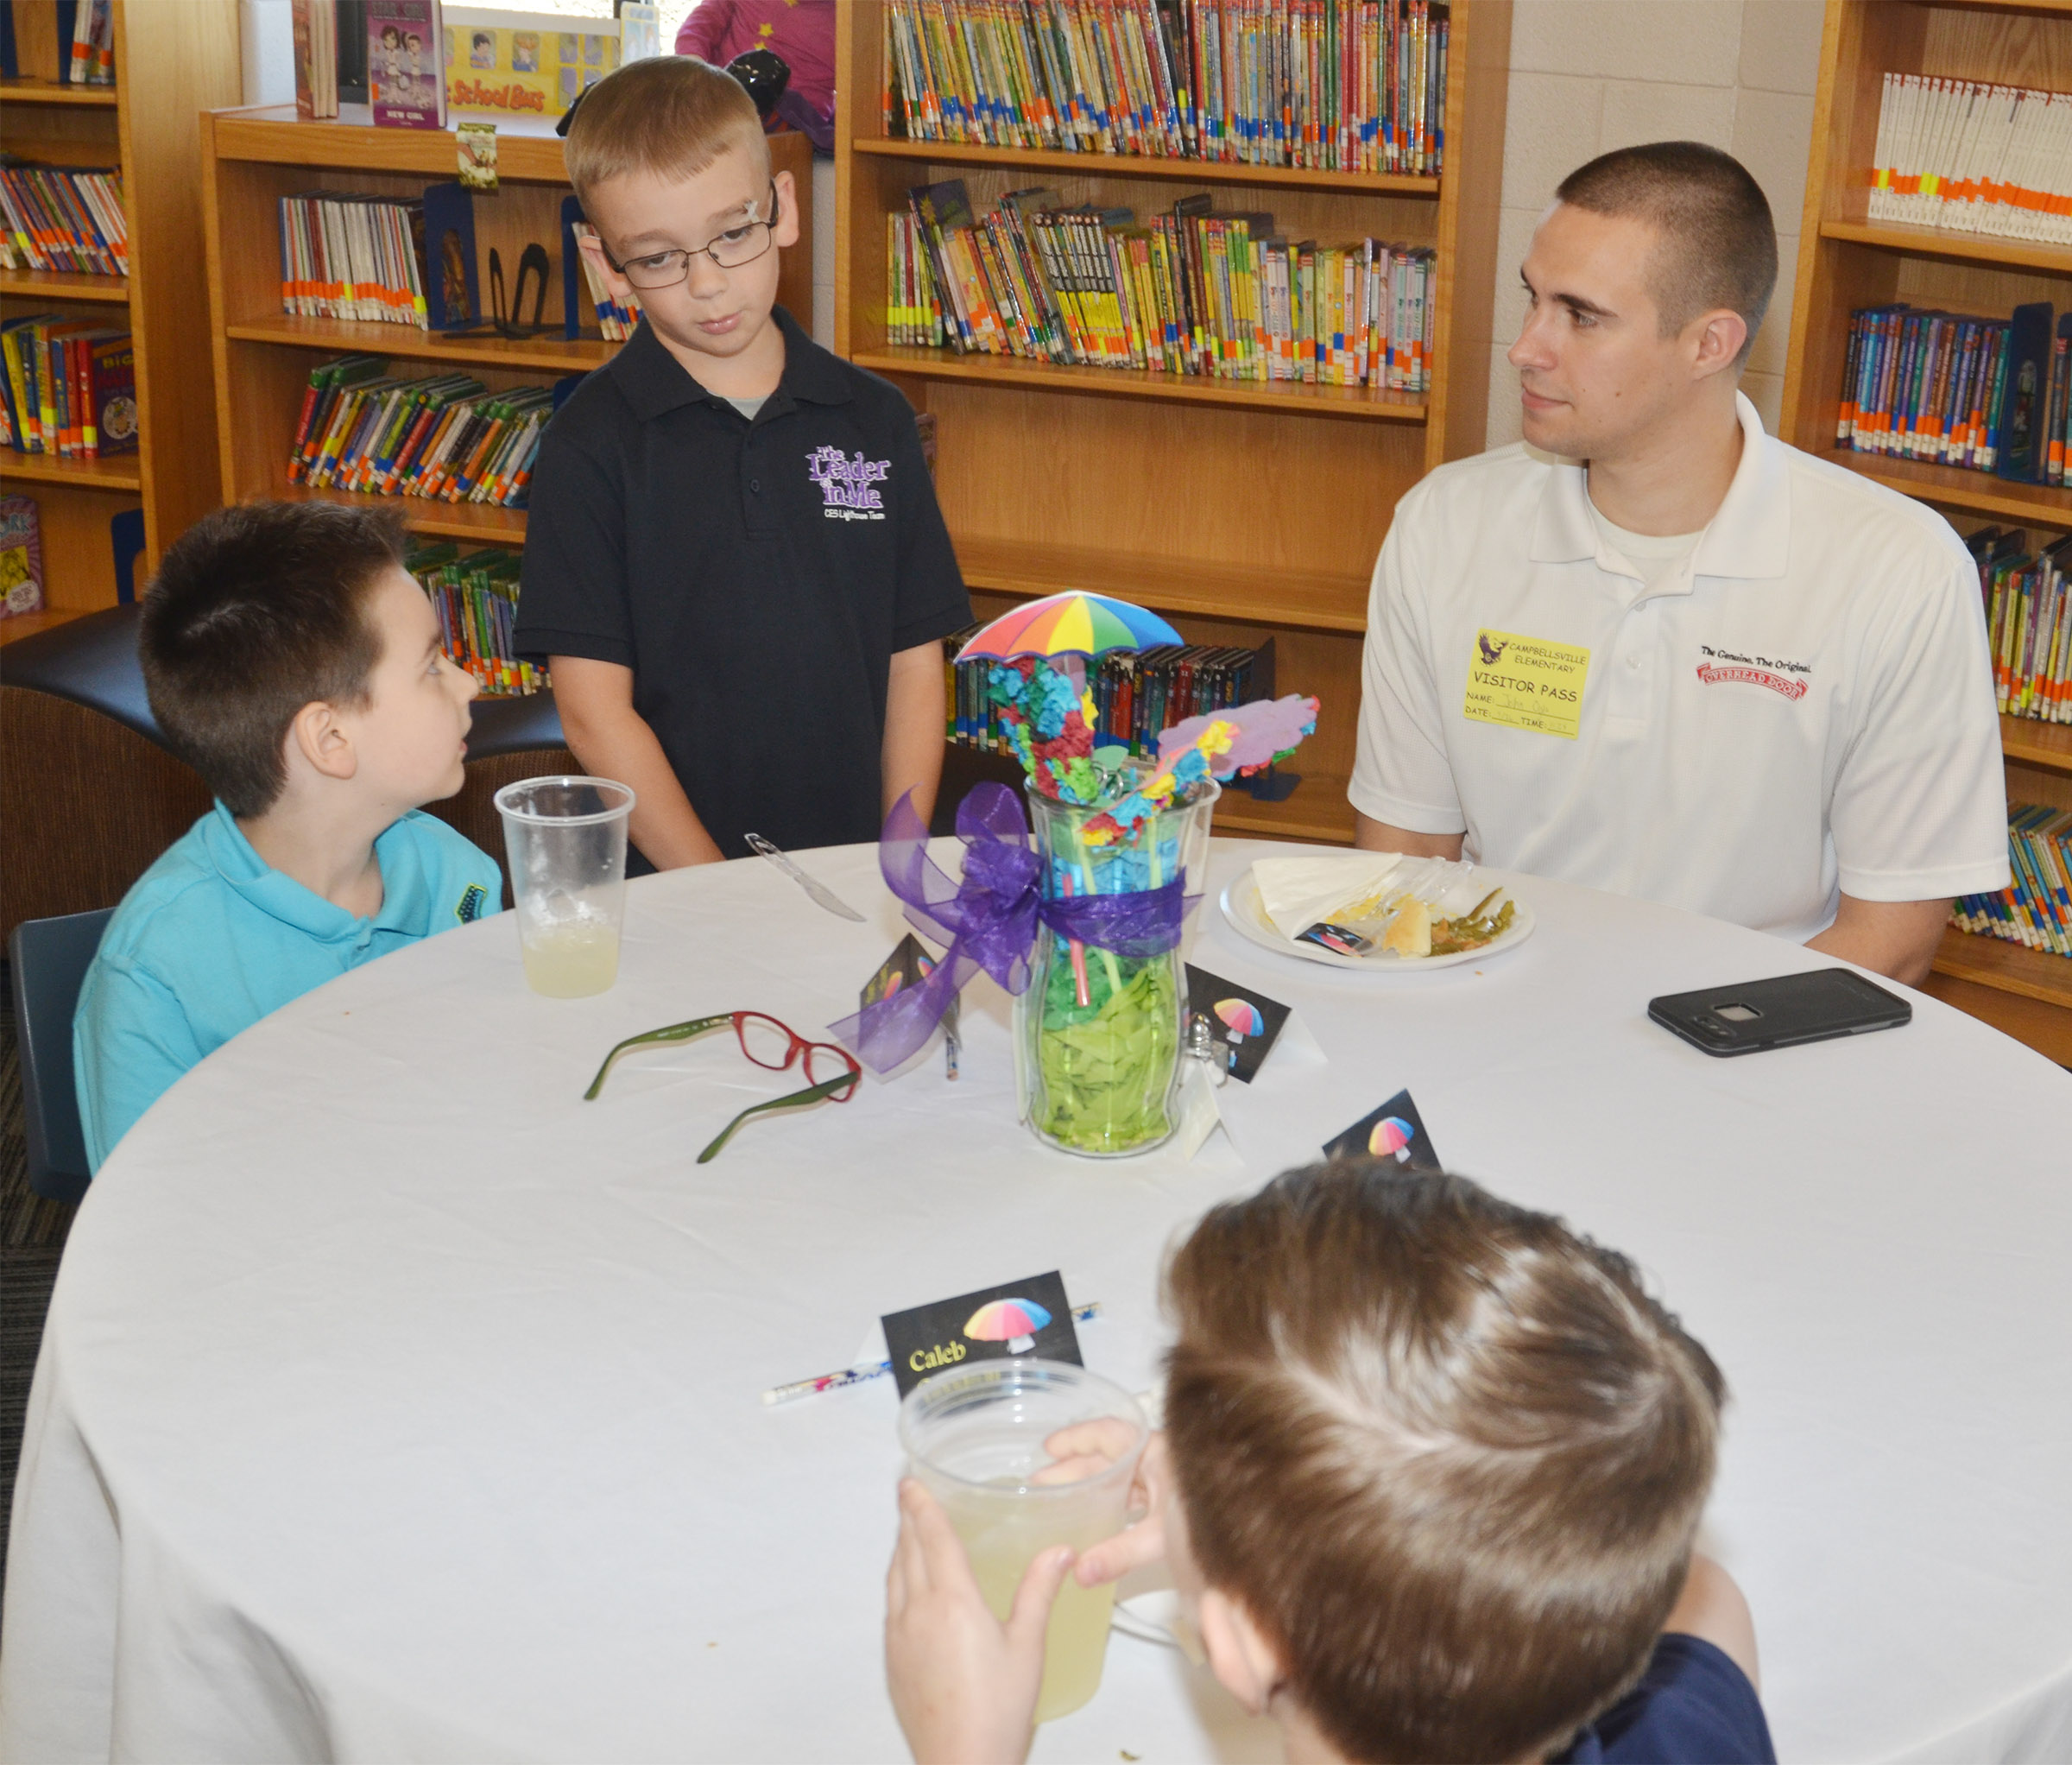 John Ogle, assistant operations manager at Overhead Door Co., talks with CES first-grader Sawyer Lange, far left, and kindergartener Caleb Goodson as third-grader Cameron Estes asks those at the table if they would like dessert.